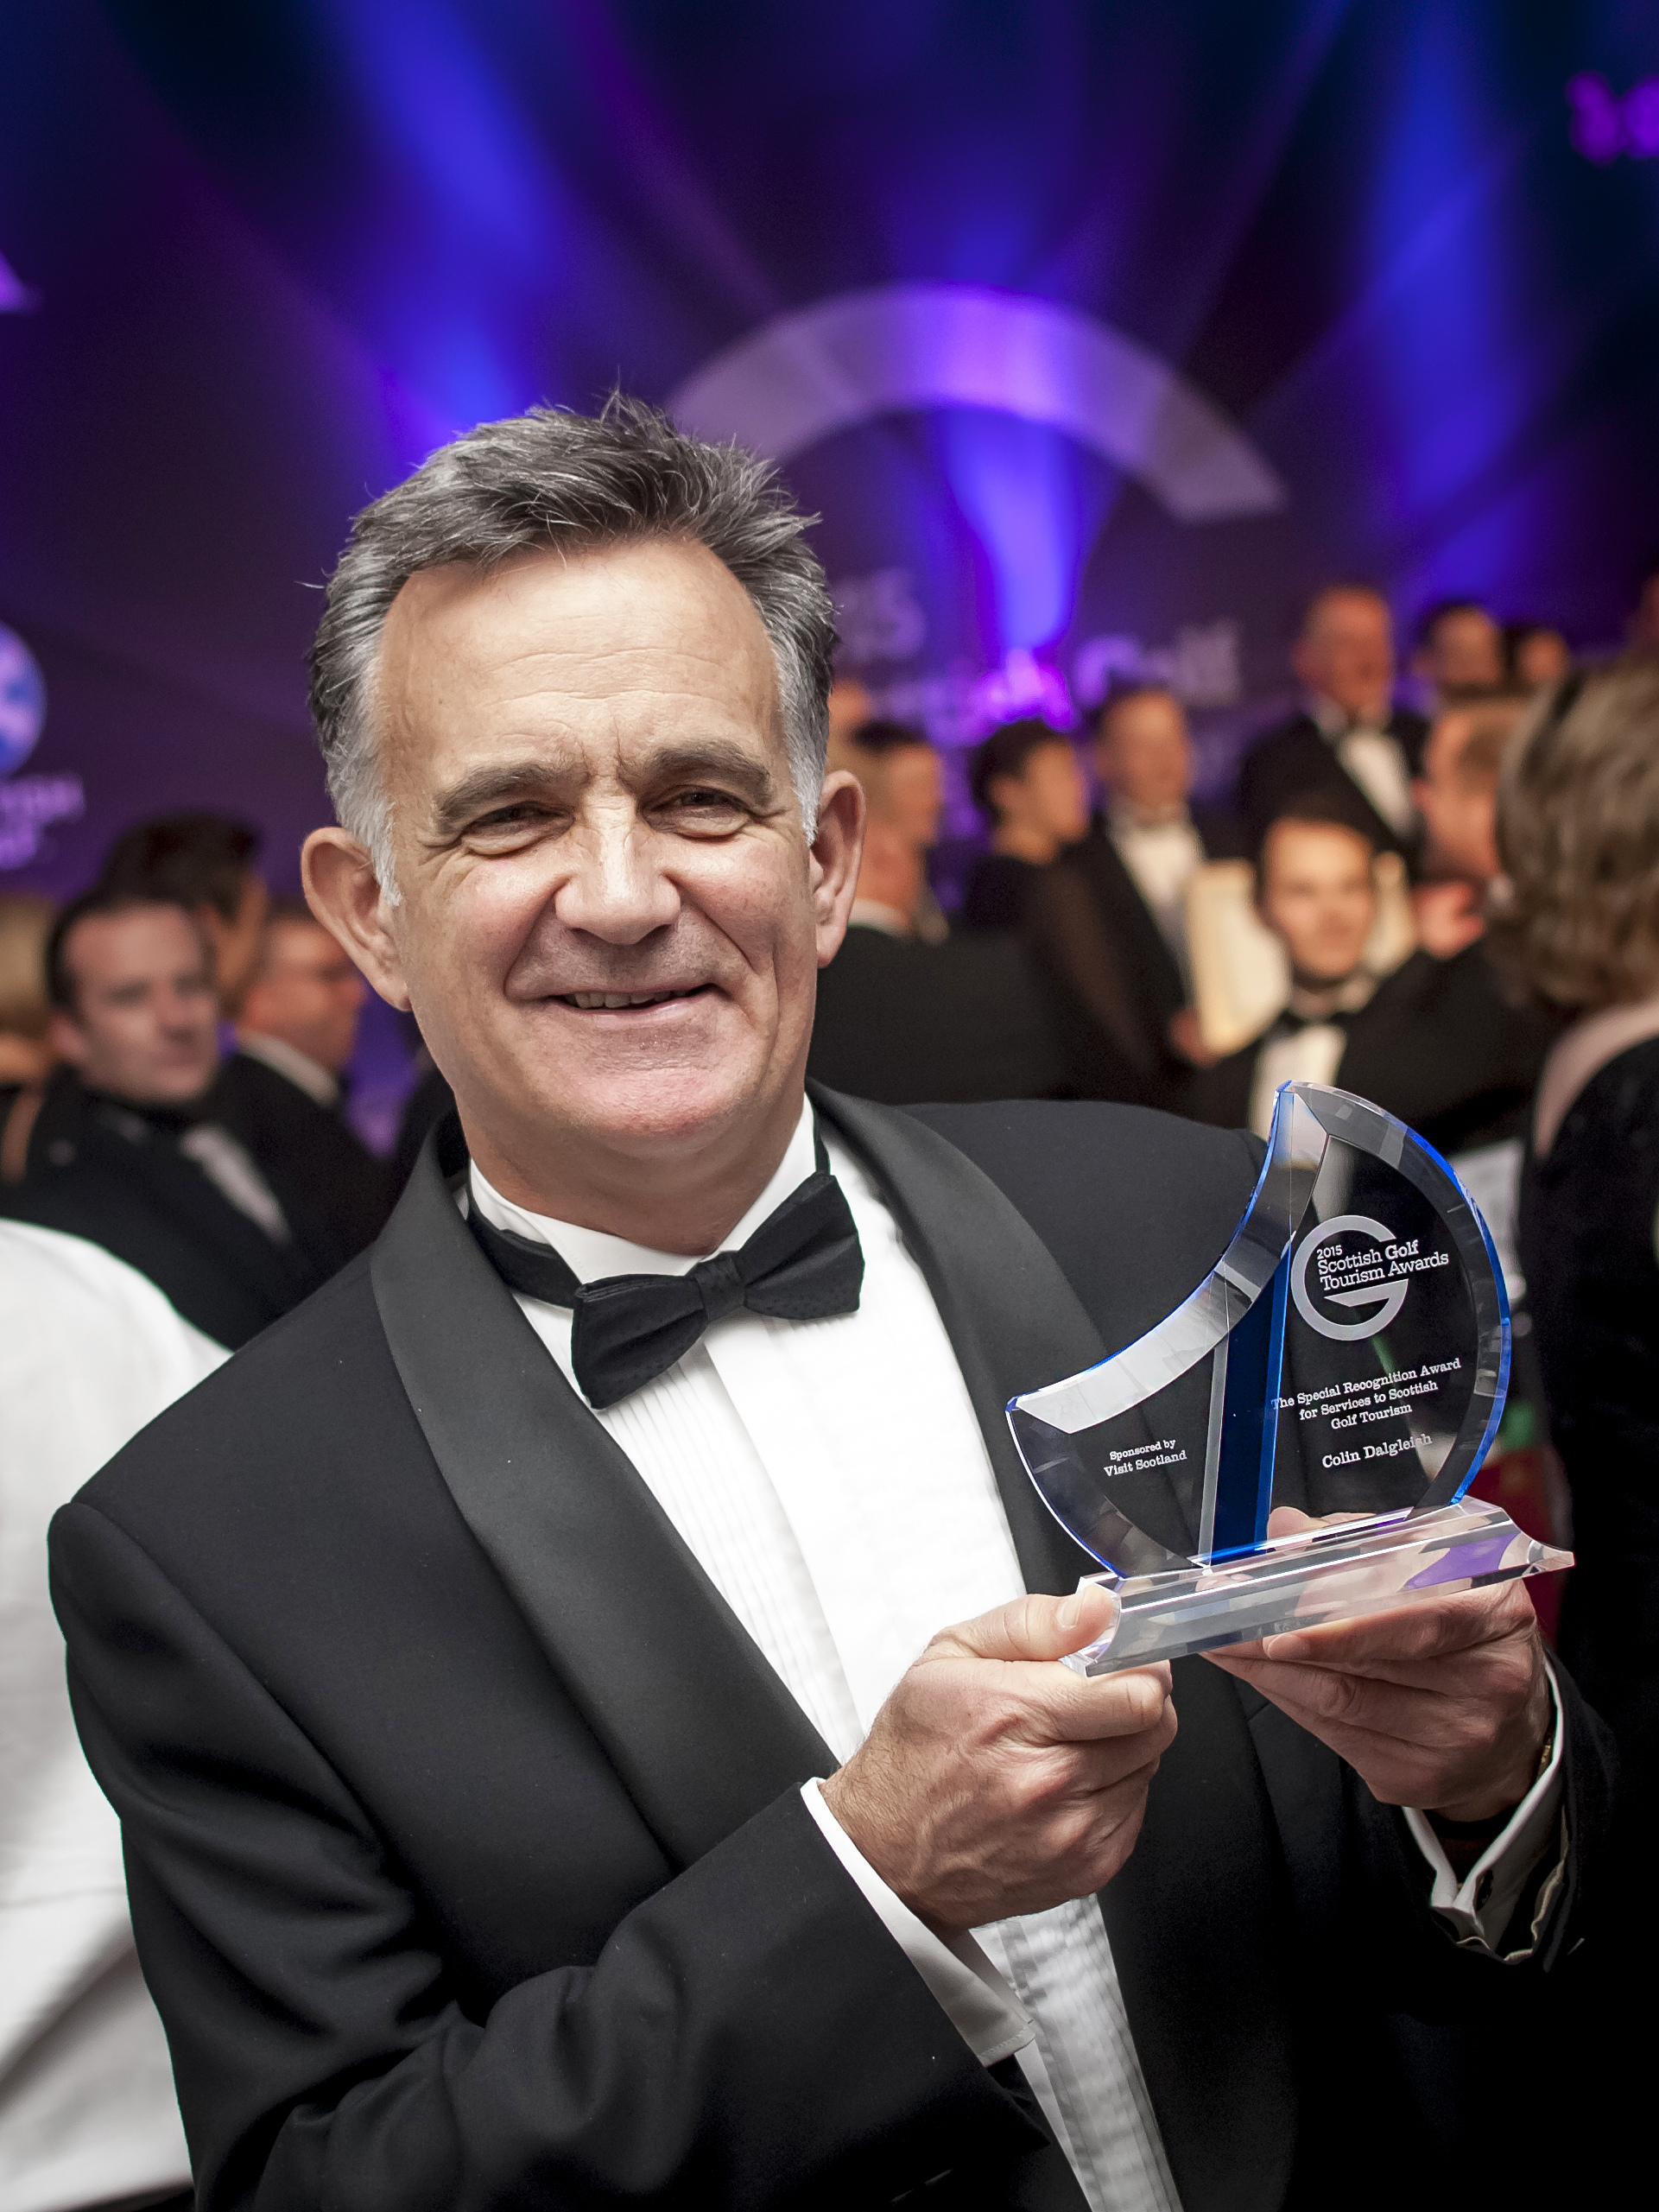 PerryGolf Co-Founder, Colin Dalgleish, receives Special Recognition Award at 2015 Scottish Golf Tourism Awards